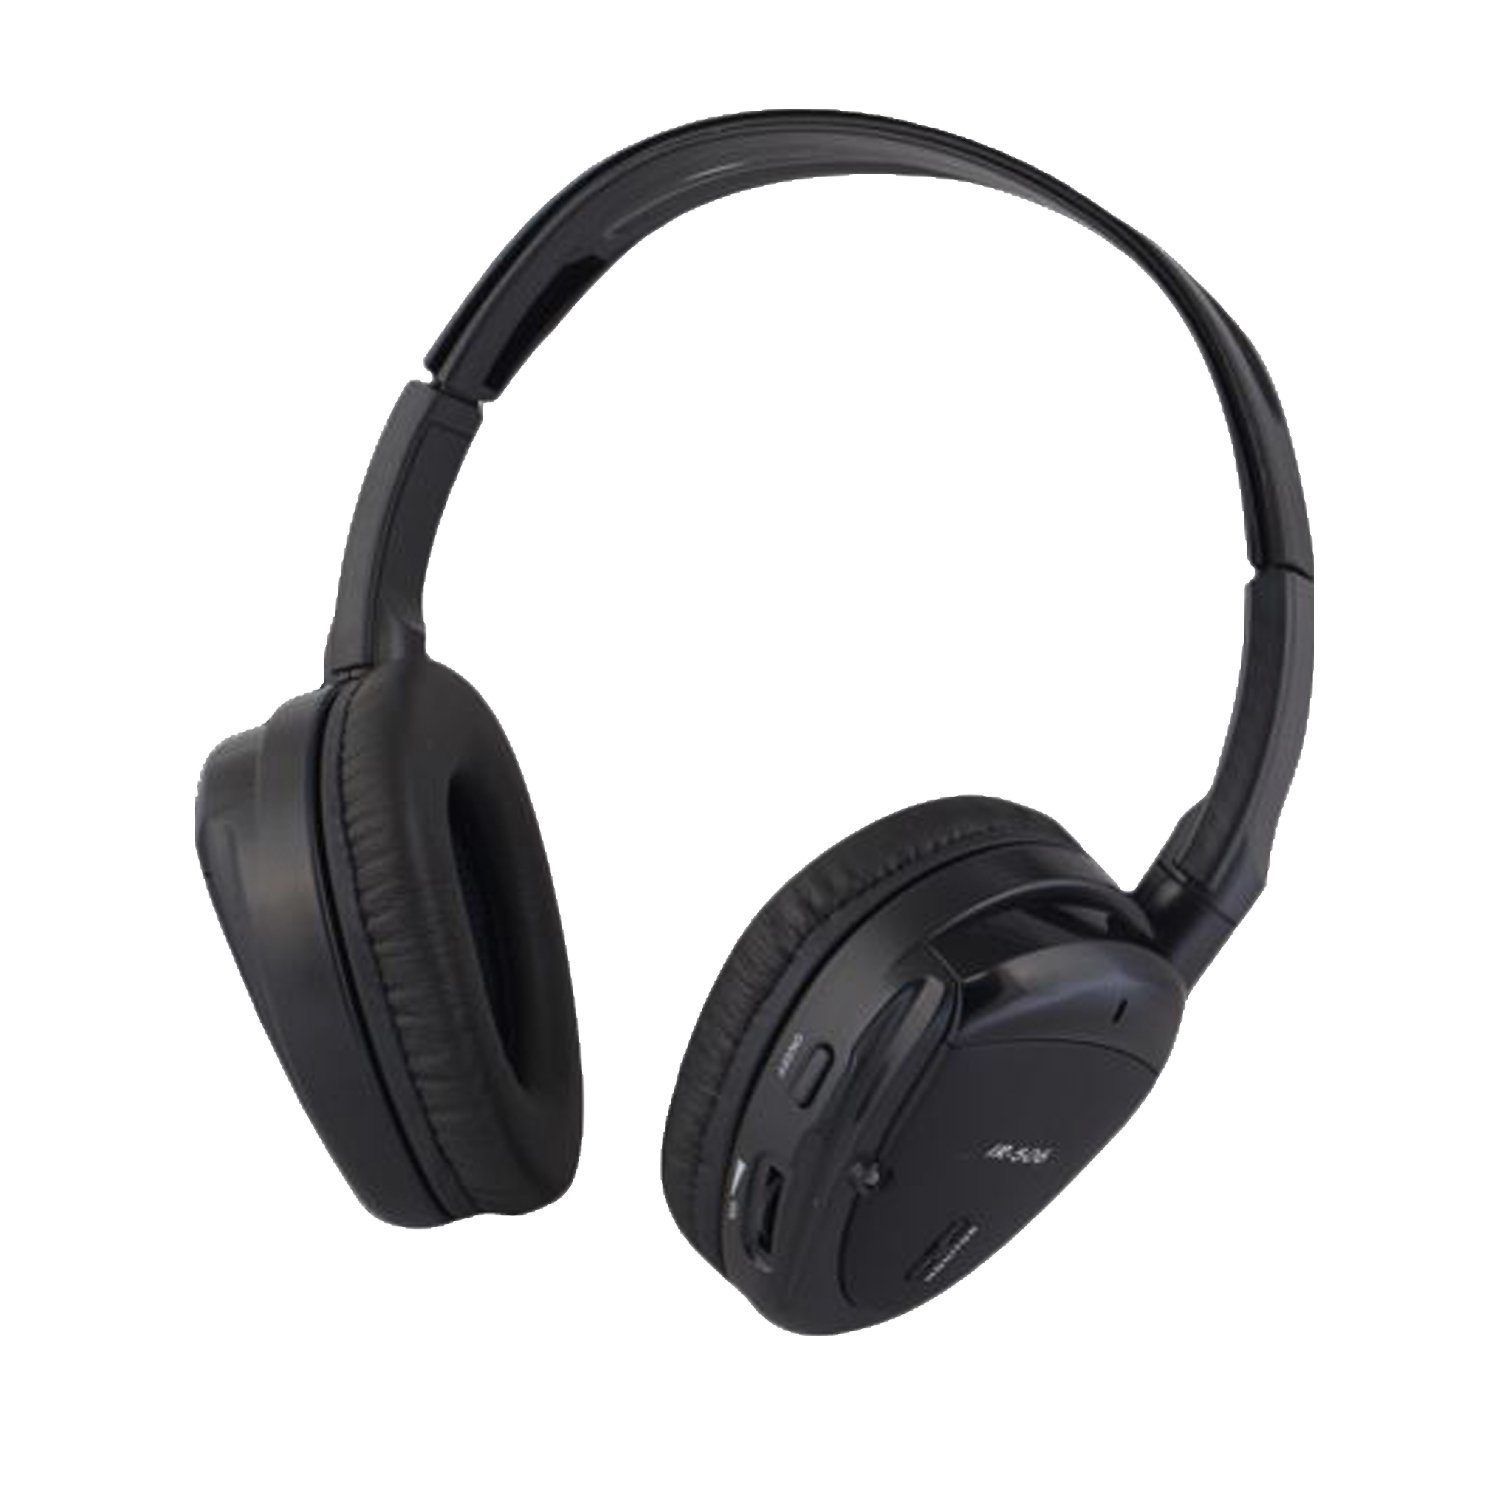 Wireless Dual Channel IR Headphone with Zippered Hard Storage Case Vission AM-IR506D